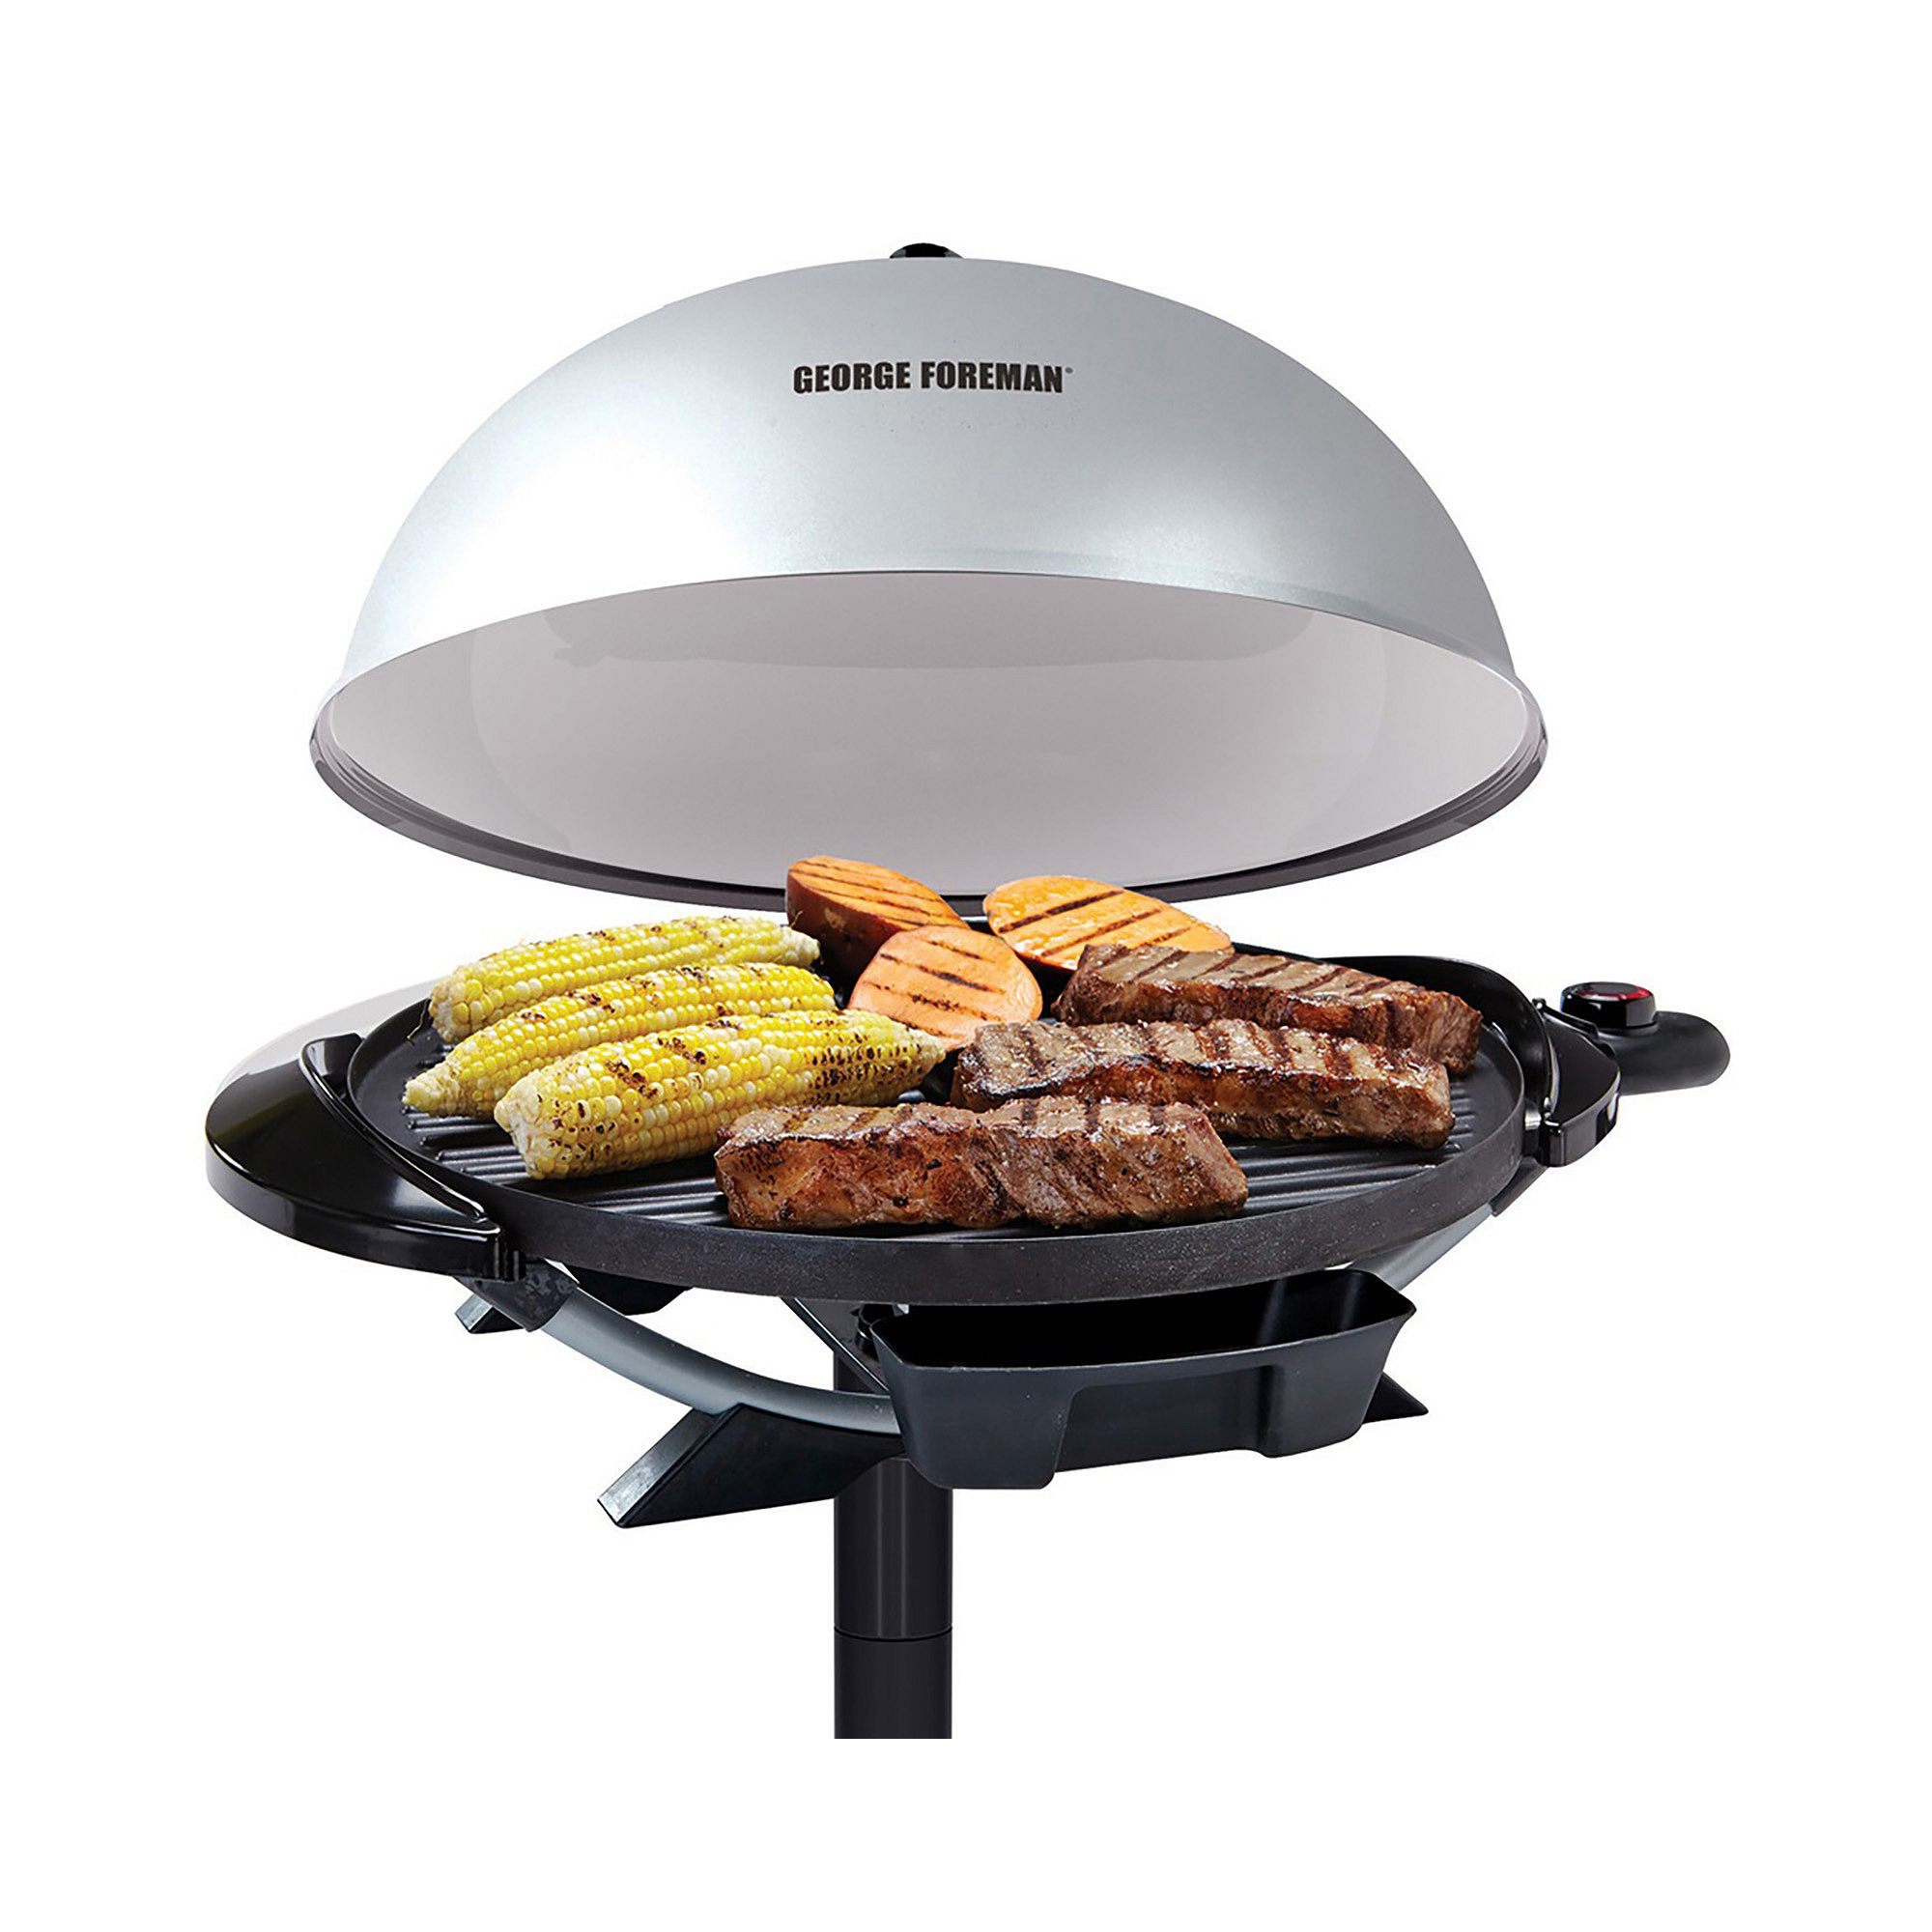 George foreman gr31sb jumbo stainless steel indoor electric grill b000q4i5ru find it at shopwiki - Buy george foreman grill ...